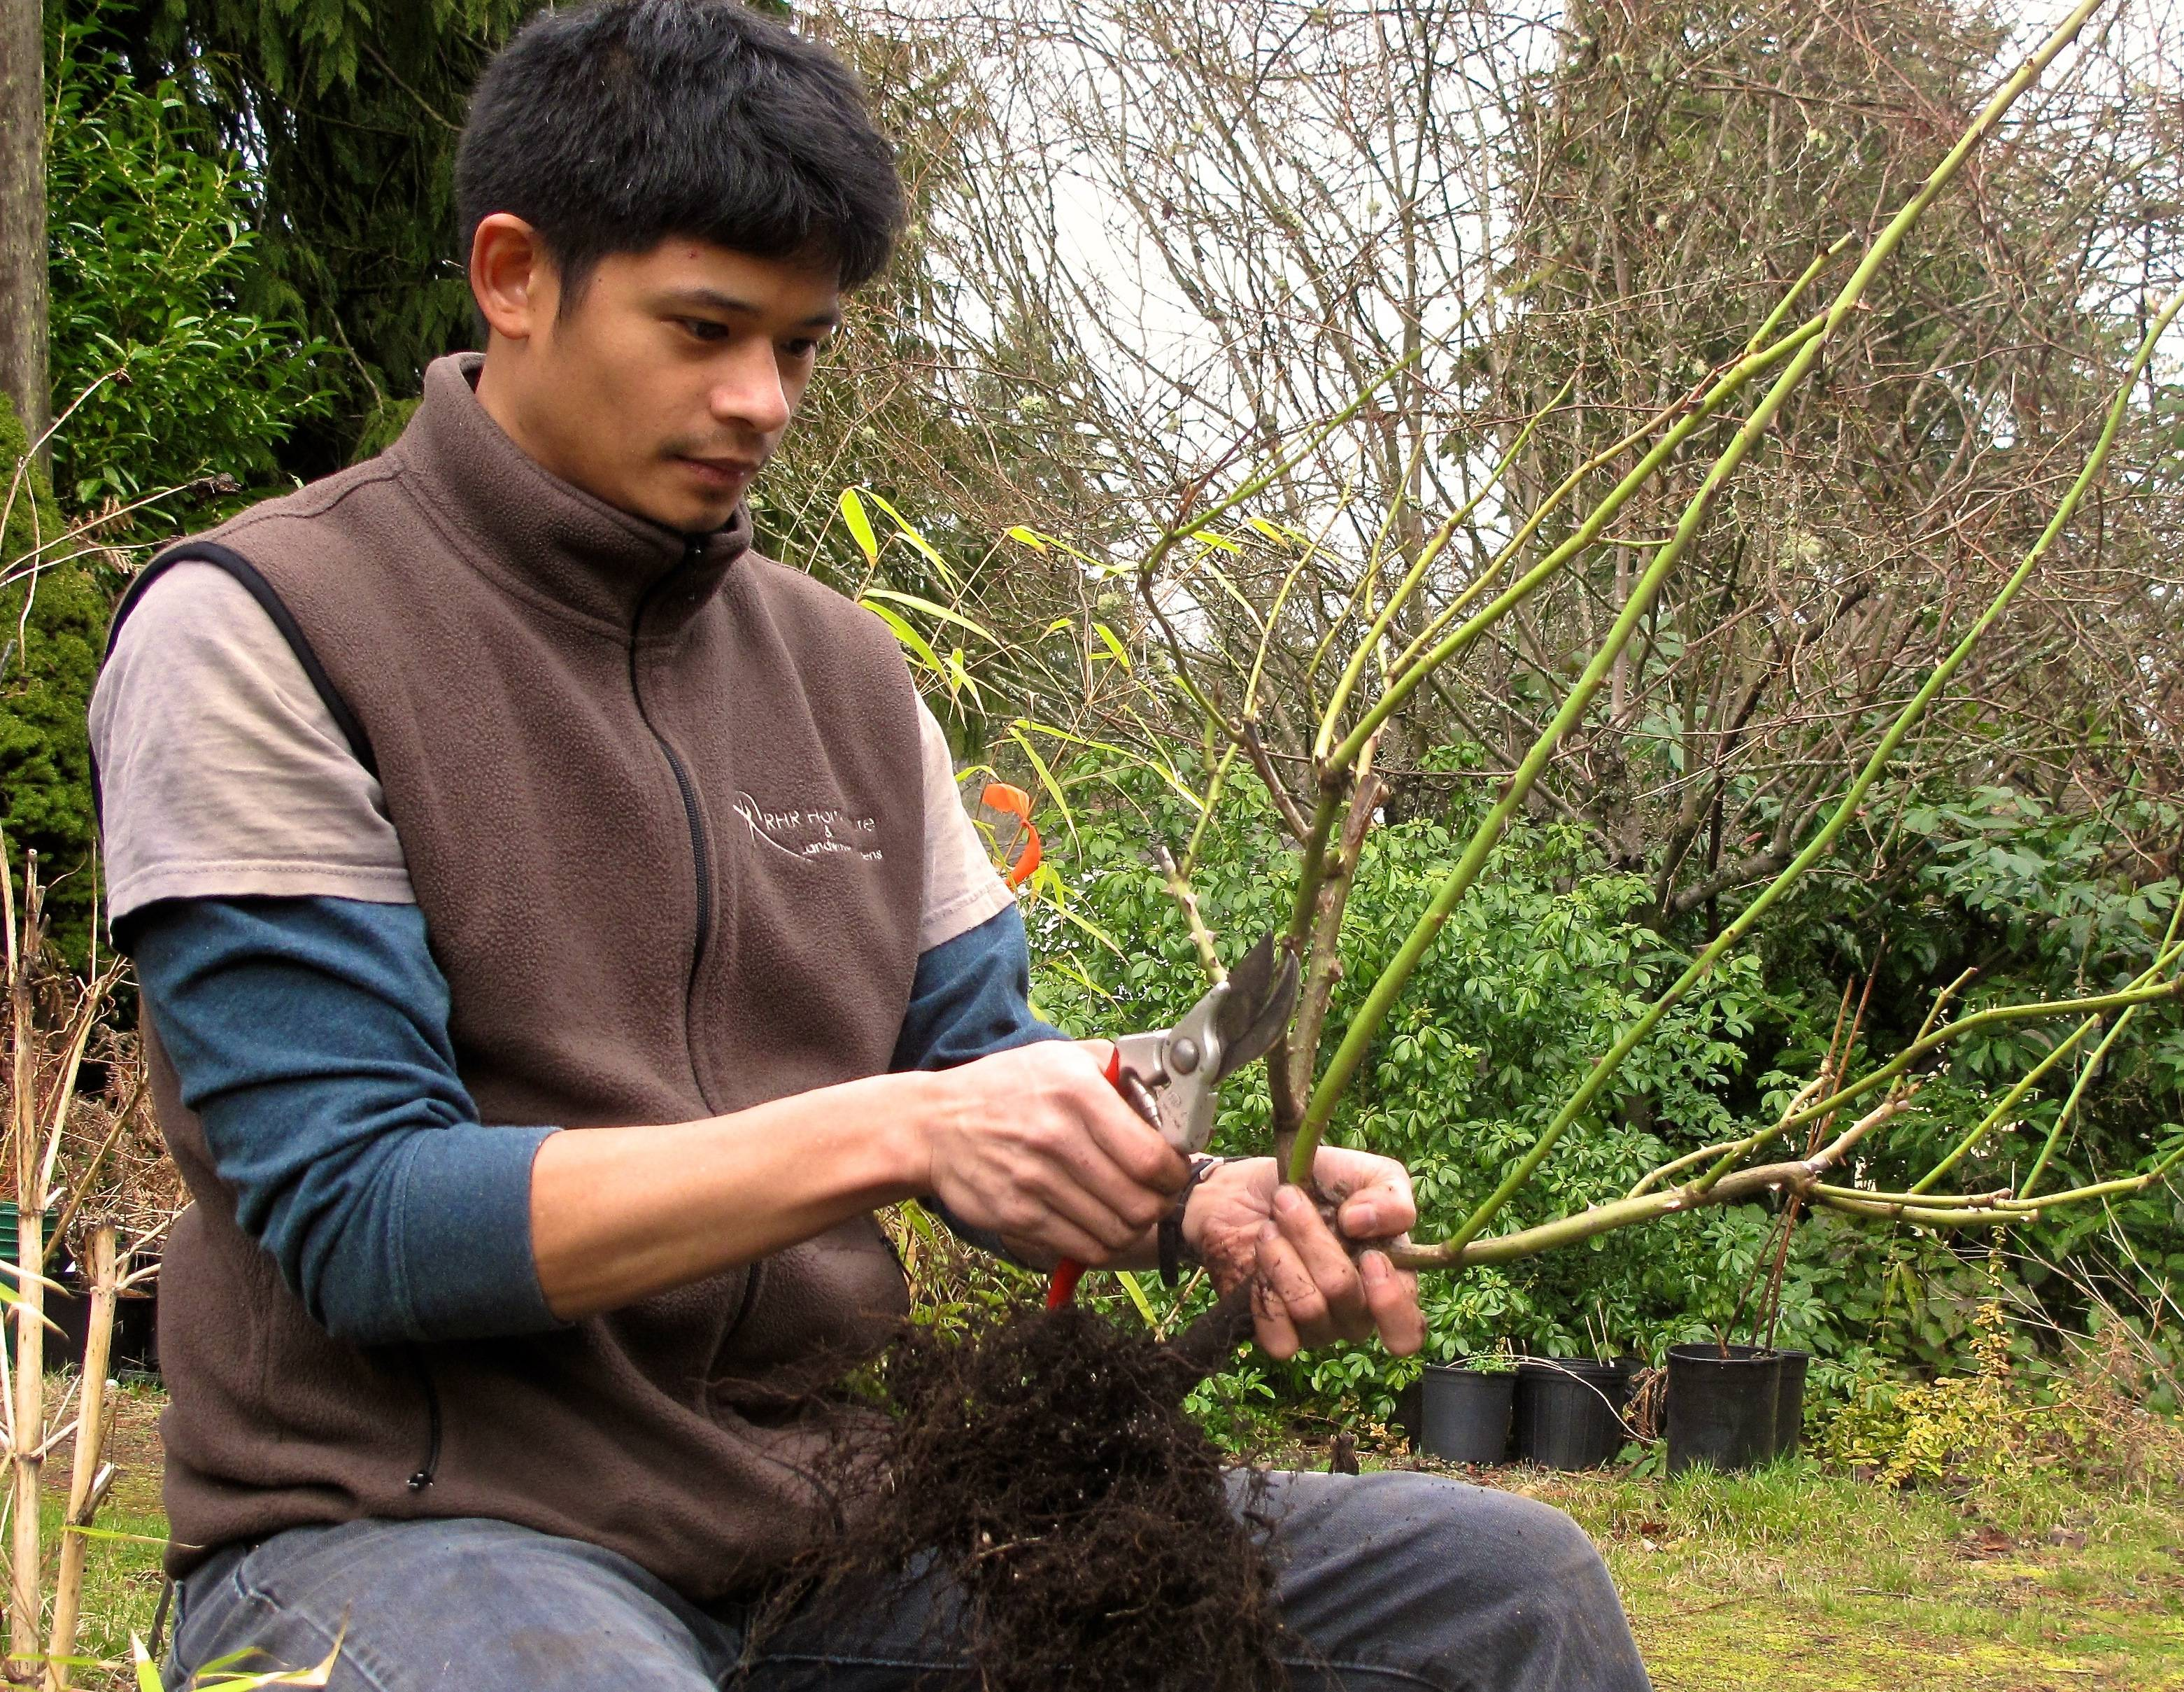 Rizanino (Riz) Reyes, a horticulturist, gives a rose bush some last-minute pruning before putting it in the ground. Avoid plants that need to be pruned for anything beyond minor cosmetic touches.